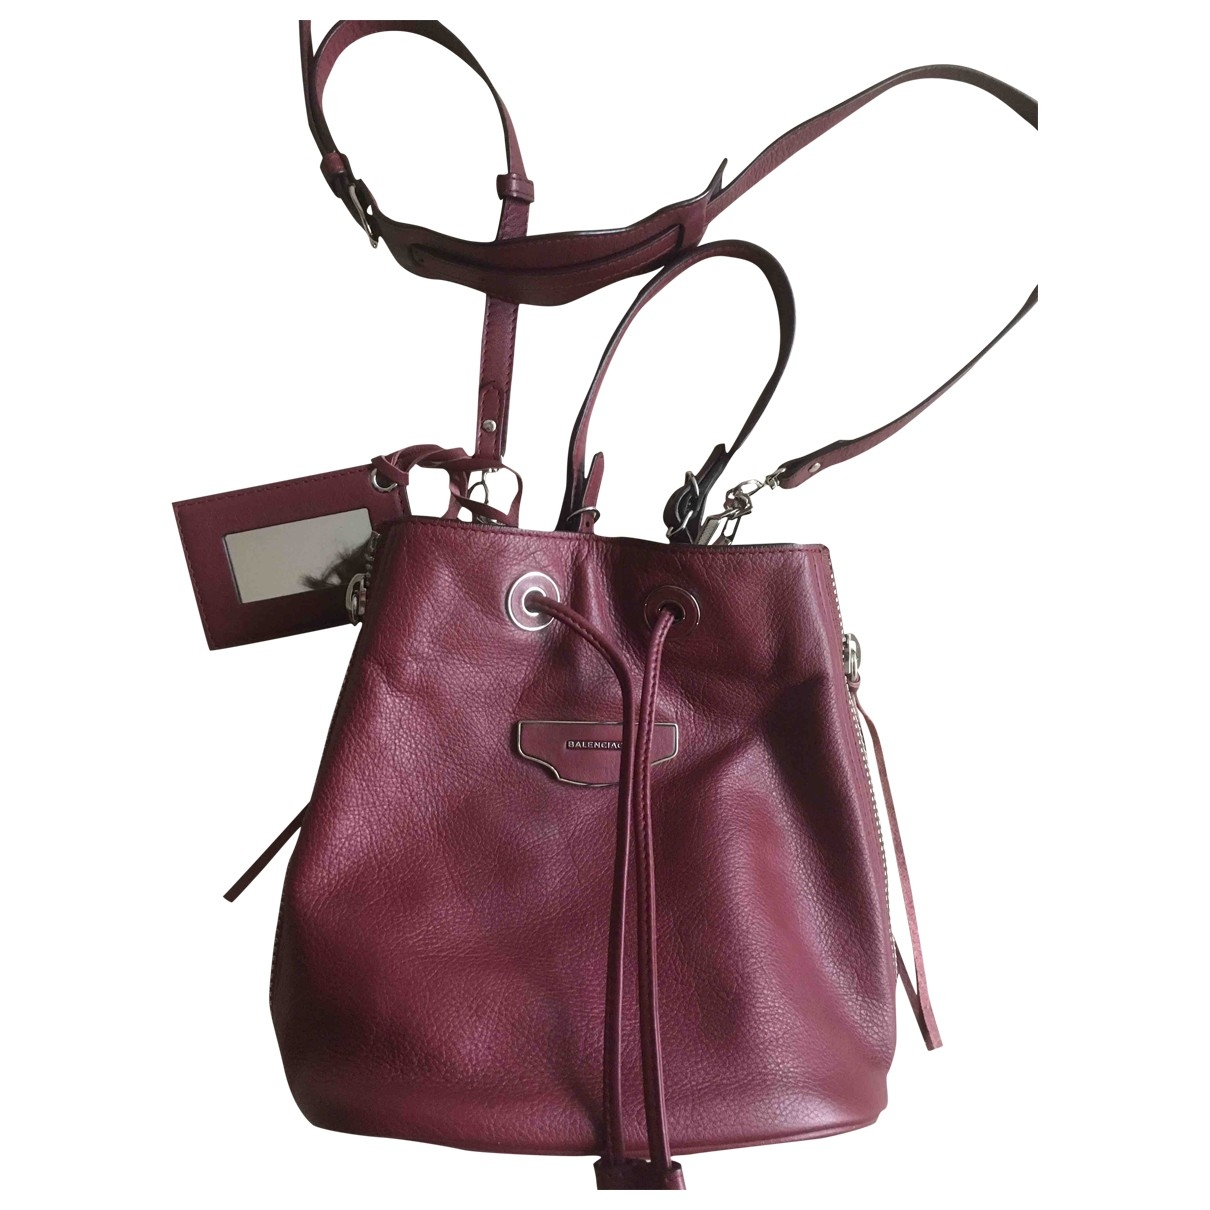 Balenciaga \N Burgundy Leather handbag for Women \N